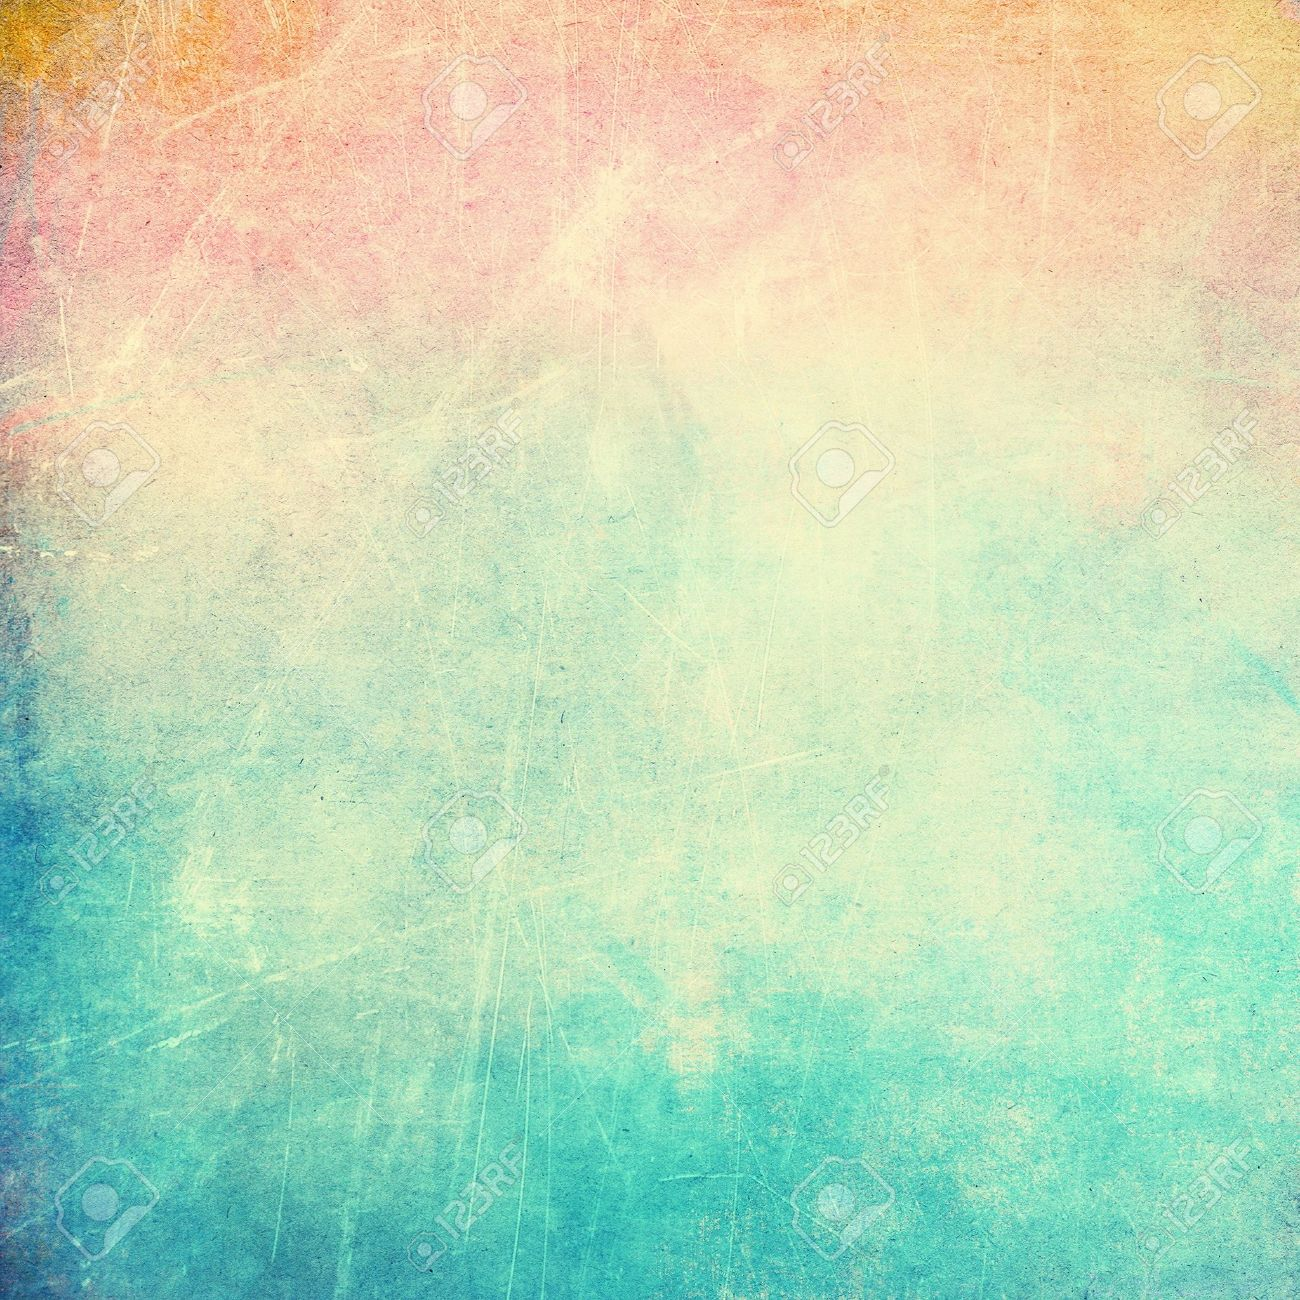 Colorful Vintage Background Stock Photo Picture And Royalty 1300x1300